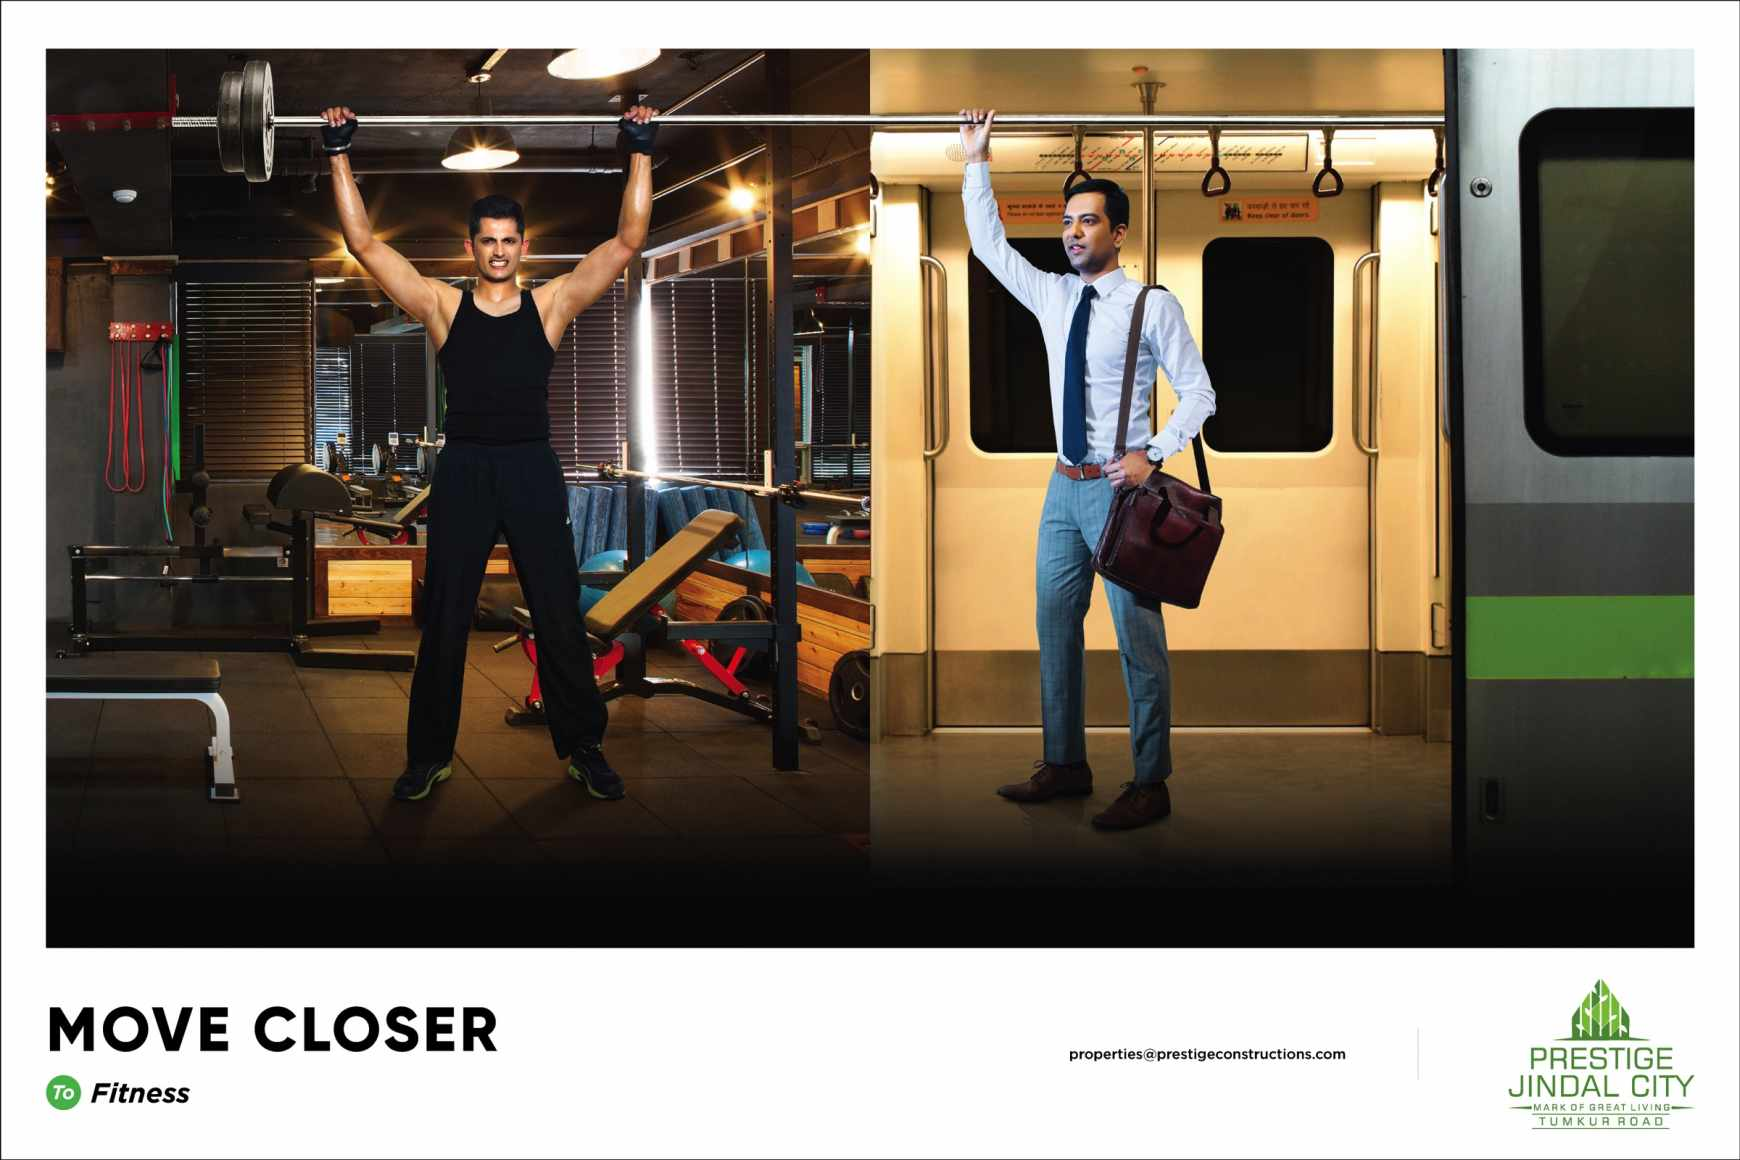 Prestige Jindal City Print Ad - Move Closer - Fitness